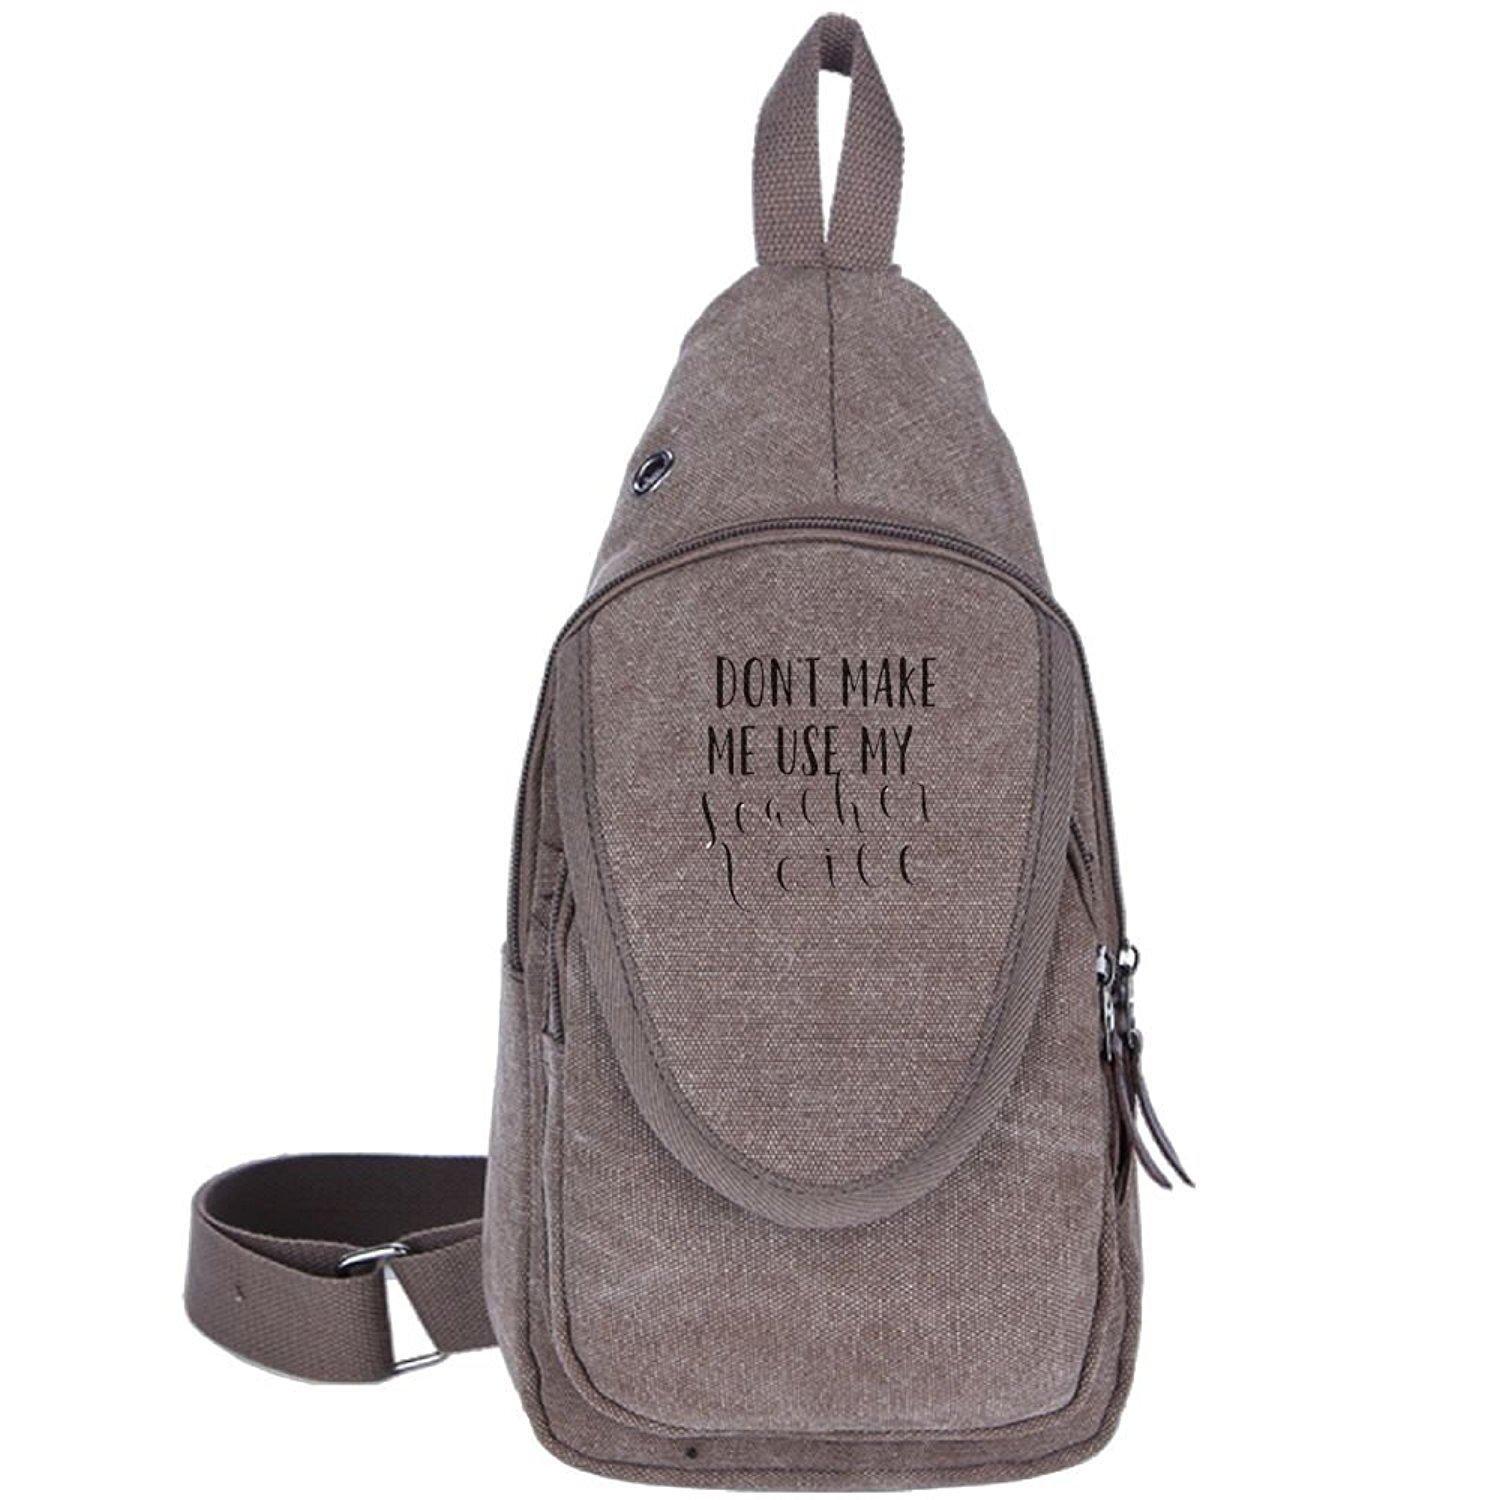 Don't Make Me Use My Teacher Voice Fashion Men's Bosom Bag Cross Body New Style Men Canvas Chest Bags